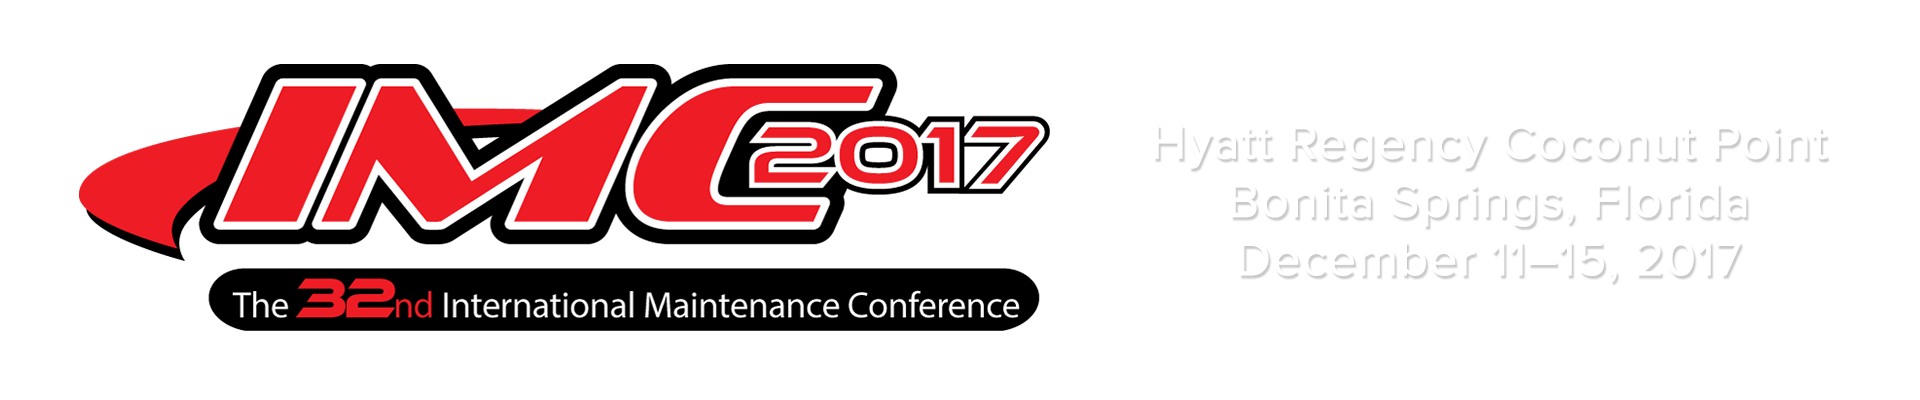 The 32nd International Maintenance Conference (IMC-2017)